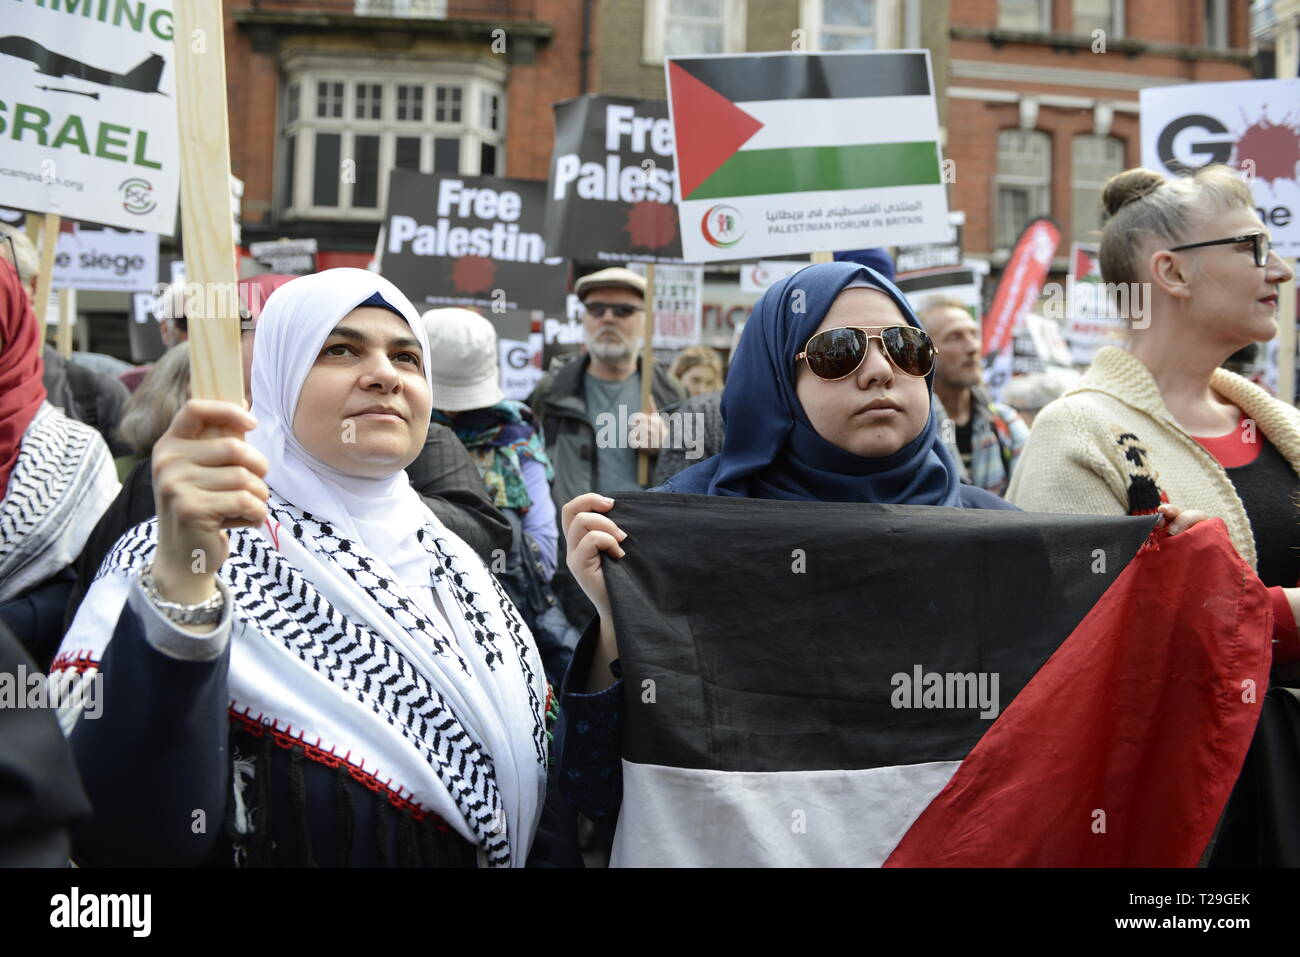 Protesters are seen holding placards and a Palestinian flag during the Exist, Resist, Return Rally for Palestine in London. People gather outside the Israeli embassy in London to demonstrate against the Israeli government, and to demand respect for Palestinians' fundamental rights to exist, resist and return. Palestinians are calling for global protests to support their right to come back to their villages. Rally was organized by Palestine Solidarity Campaign, Stop the War Coalition, Palestinian Forum in Britain, Friends of Al- Aqsa, and Muslim Association of Britain. - Stock Image